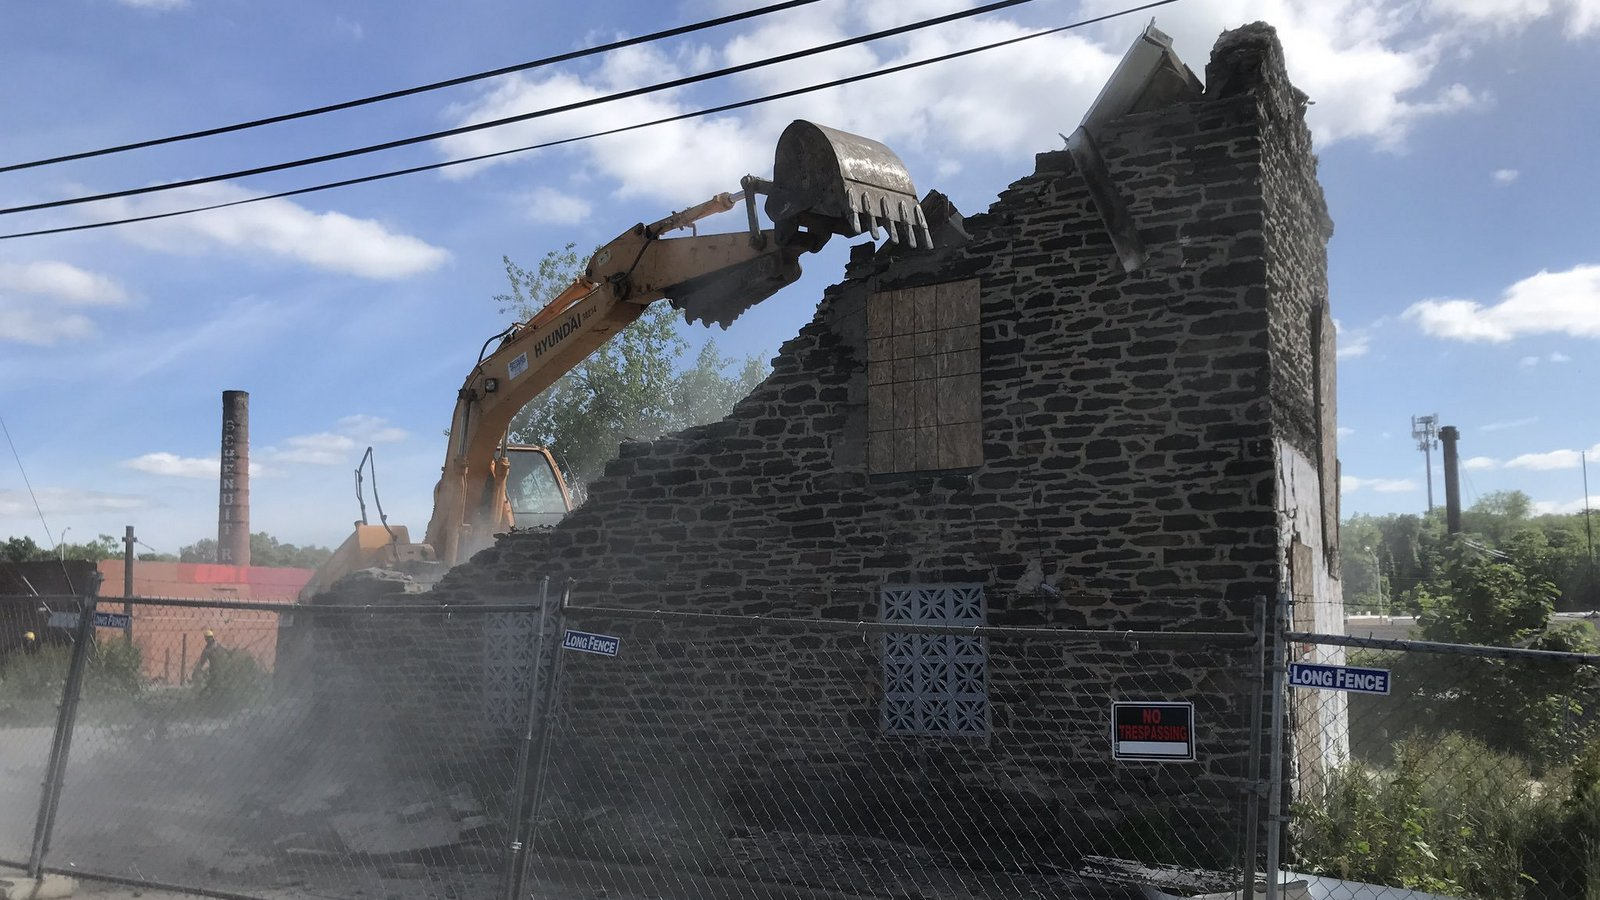 Crews rip down historic stone houses in Baltimore's Woodberry neighborhood. (@sevensixfive)